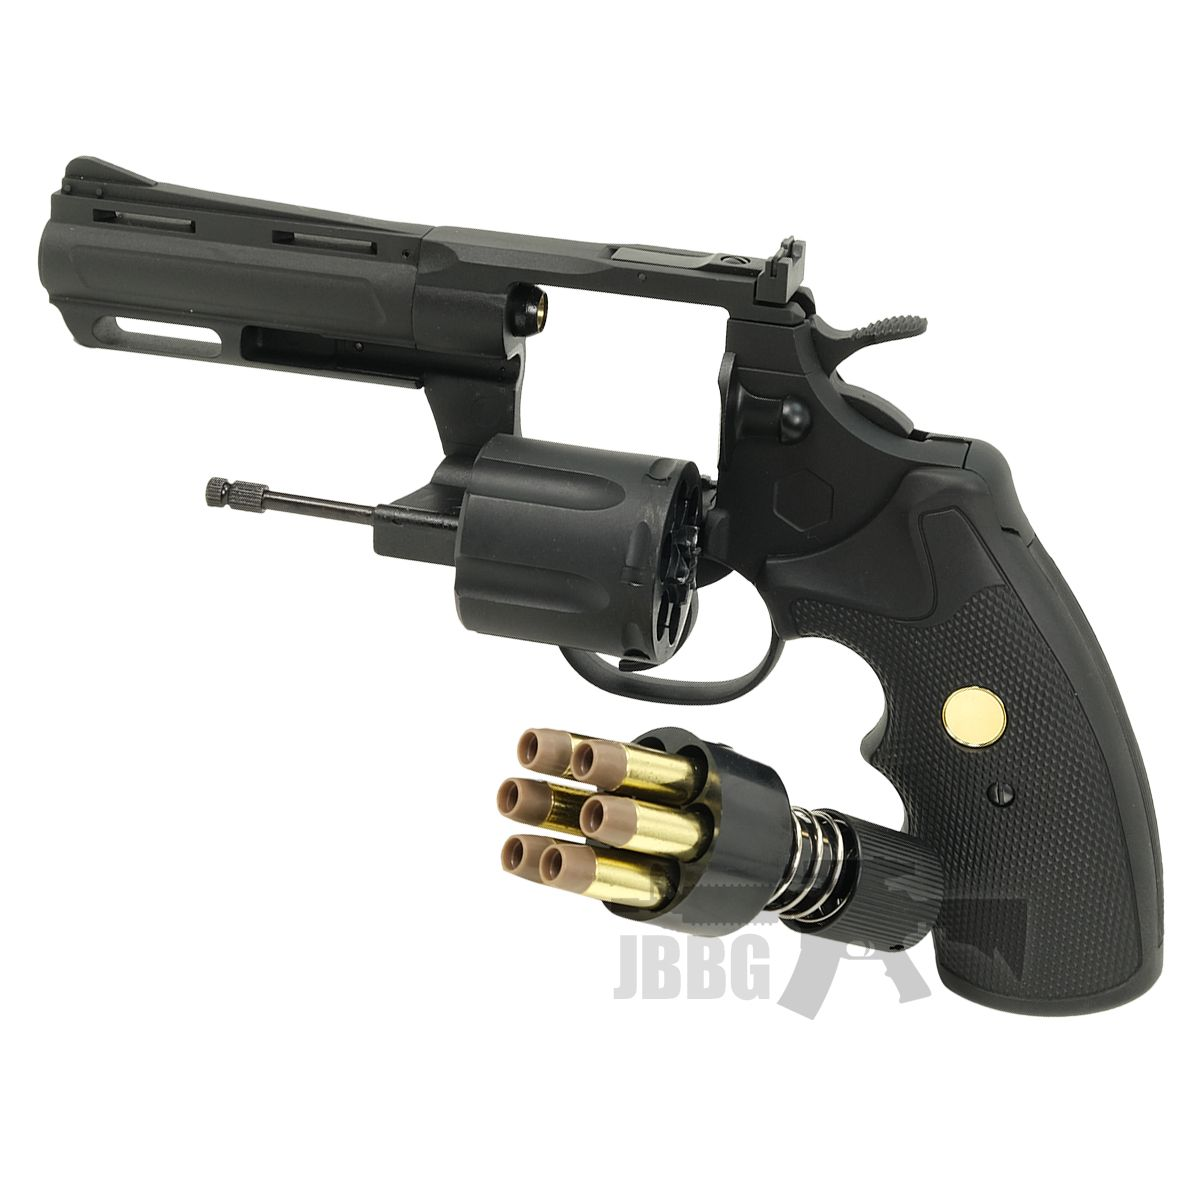 King Arms Co2 Airsoft Revolver 6